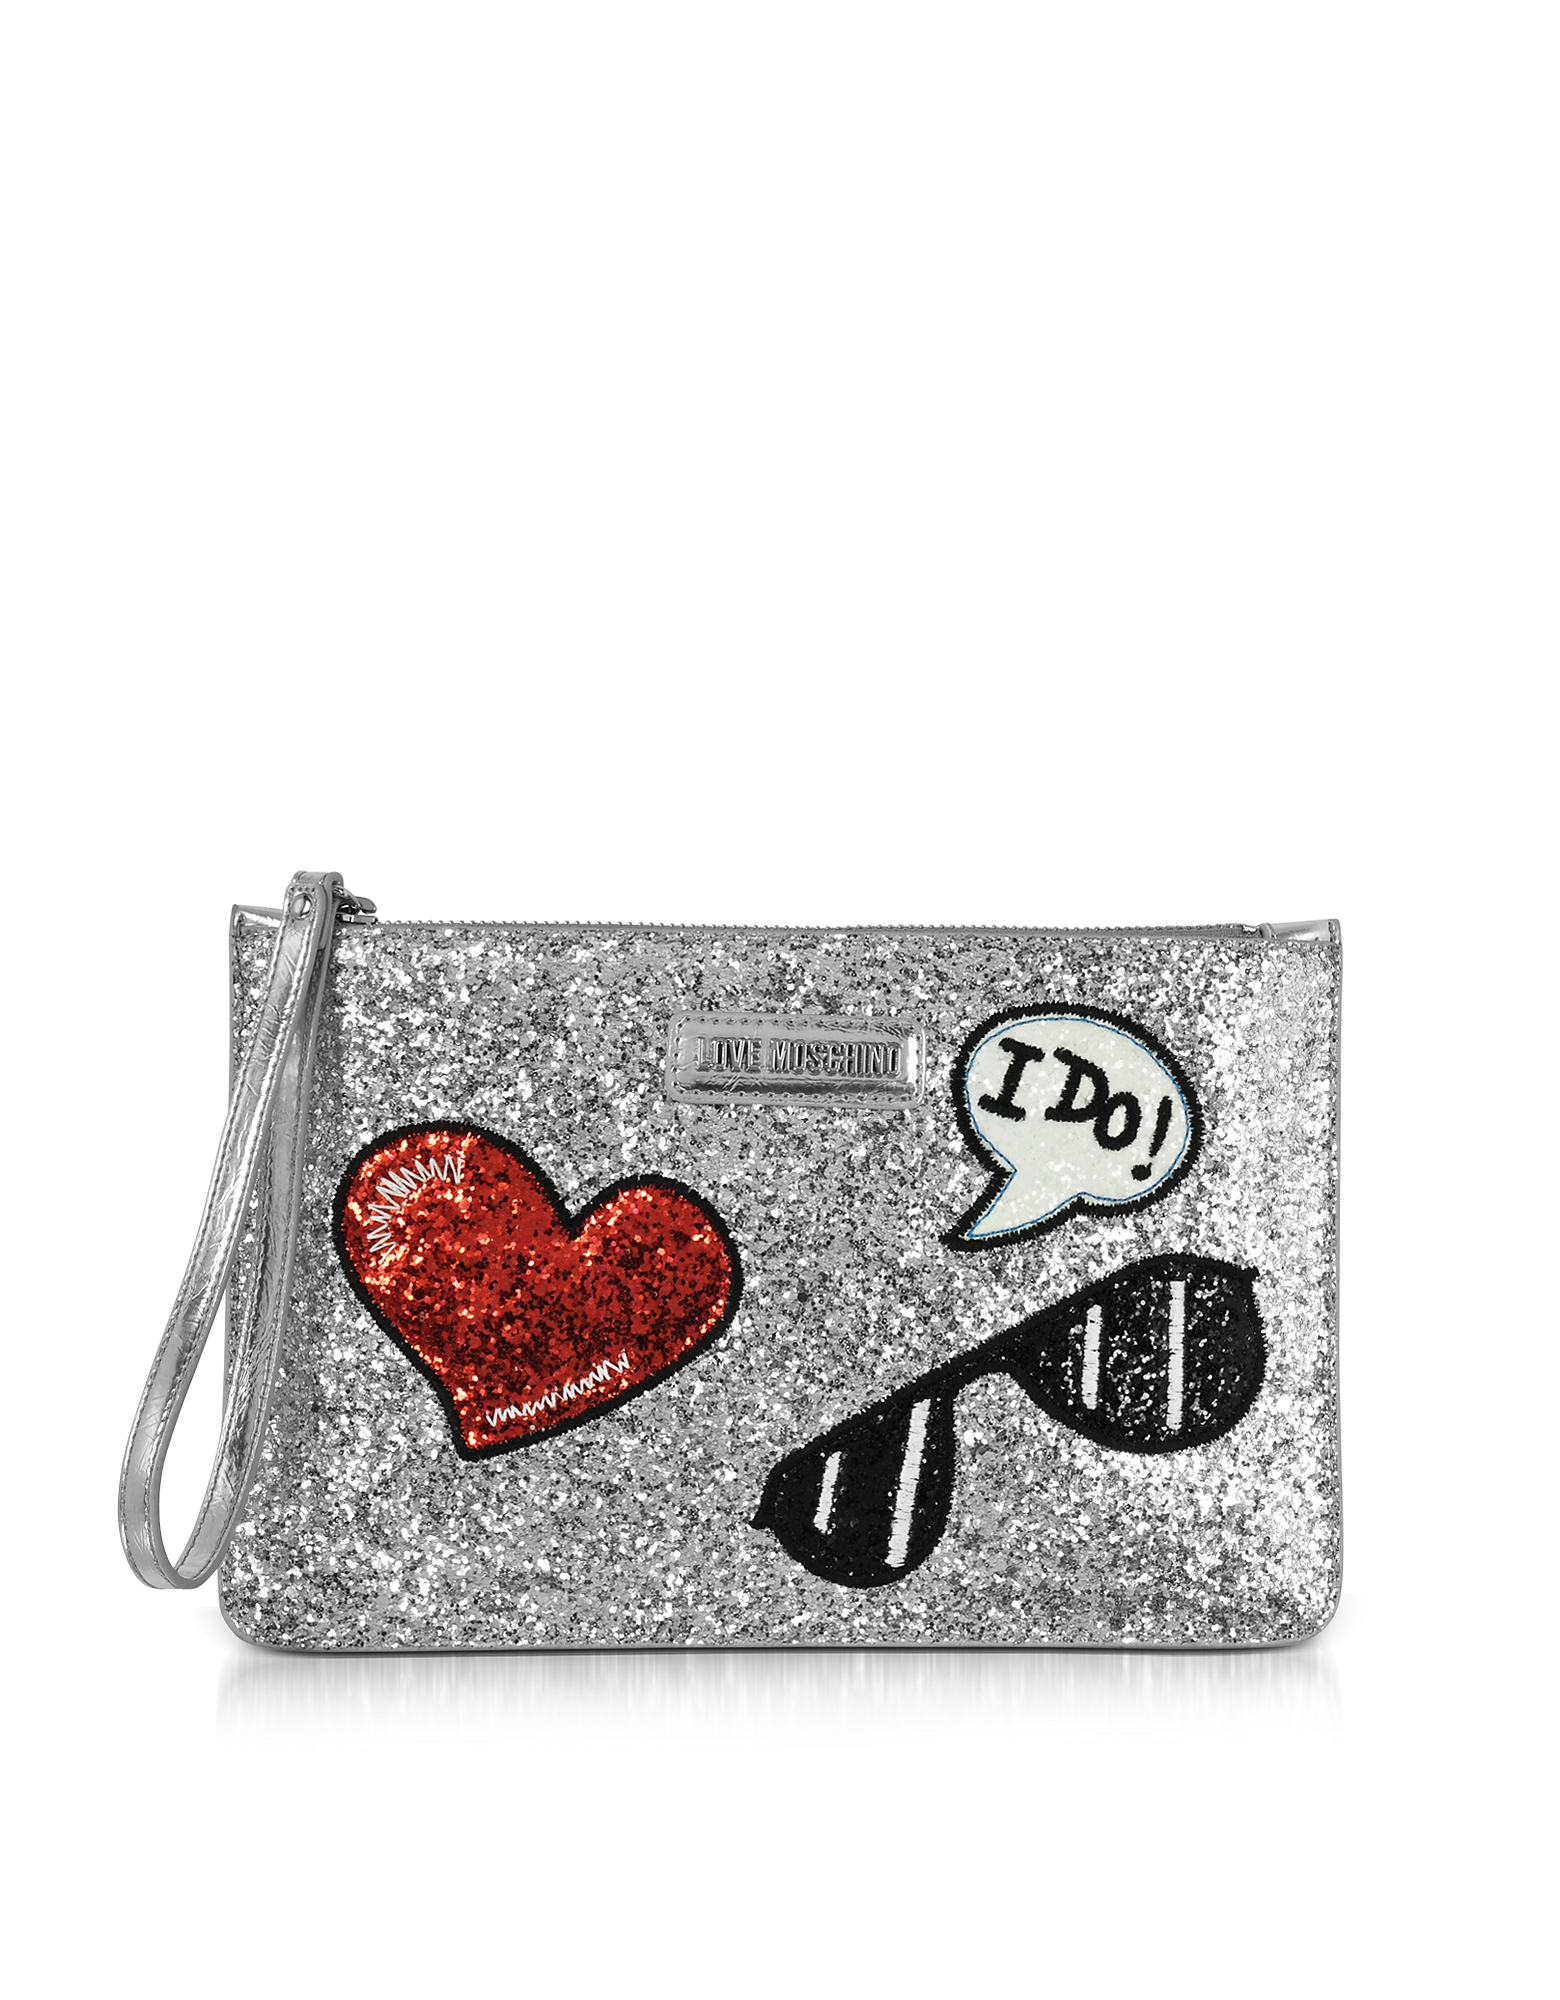 Love Moschino Handbags, Sparkling Metallic Silver Clutch